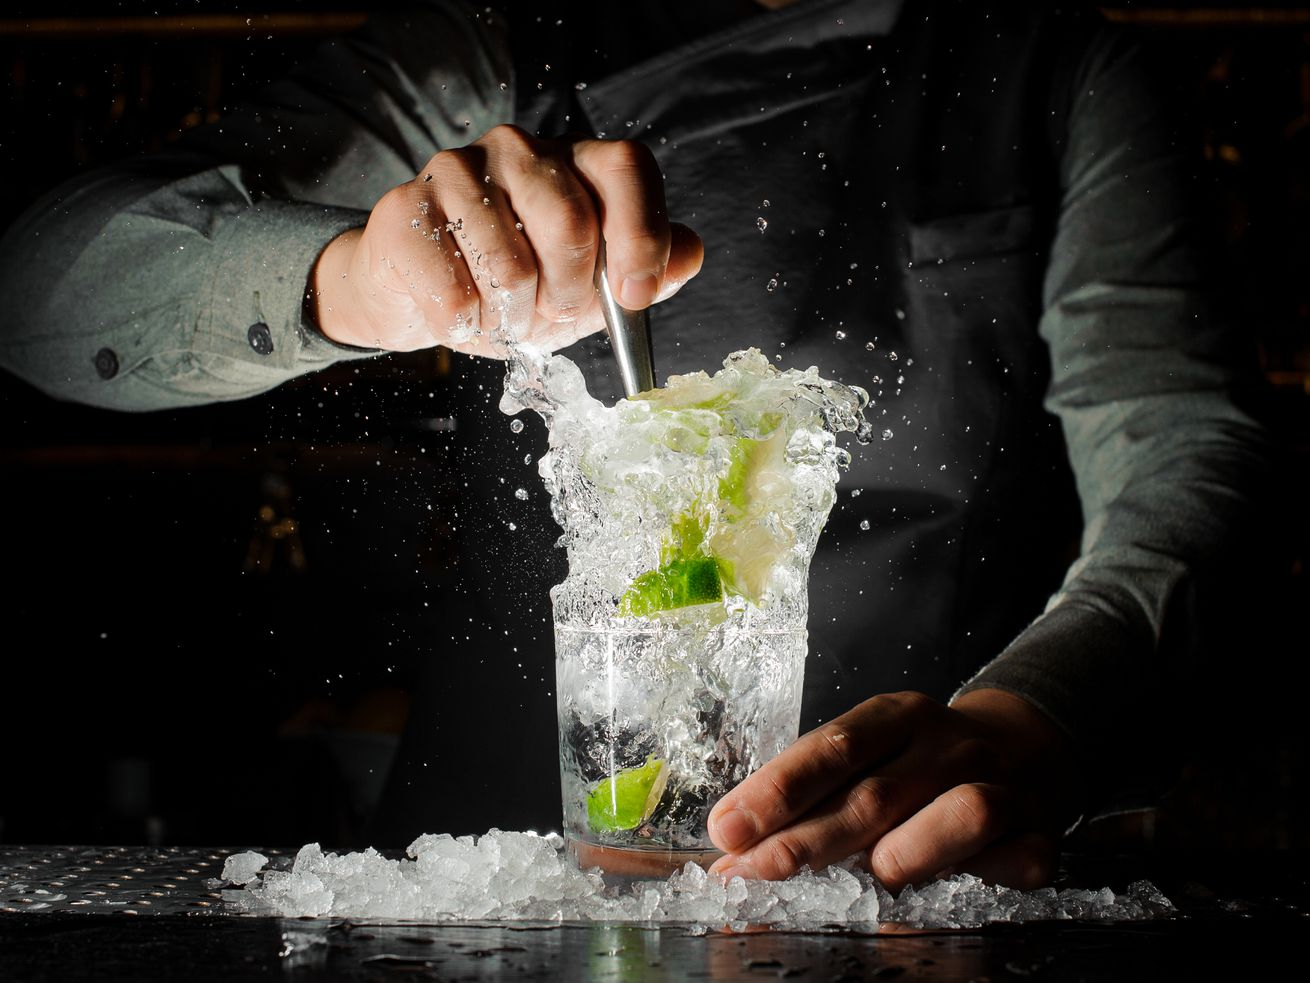 Bartender squeezing juice from fresh lime in a glass using a citrus press and splashing it out making an alcoholic cocktail